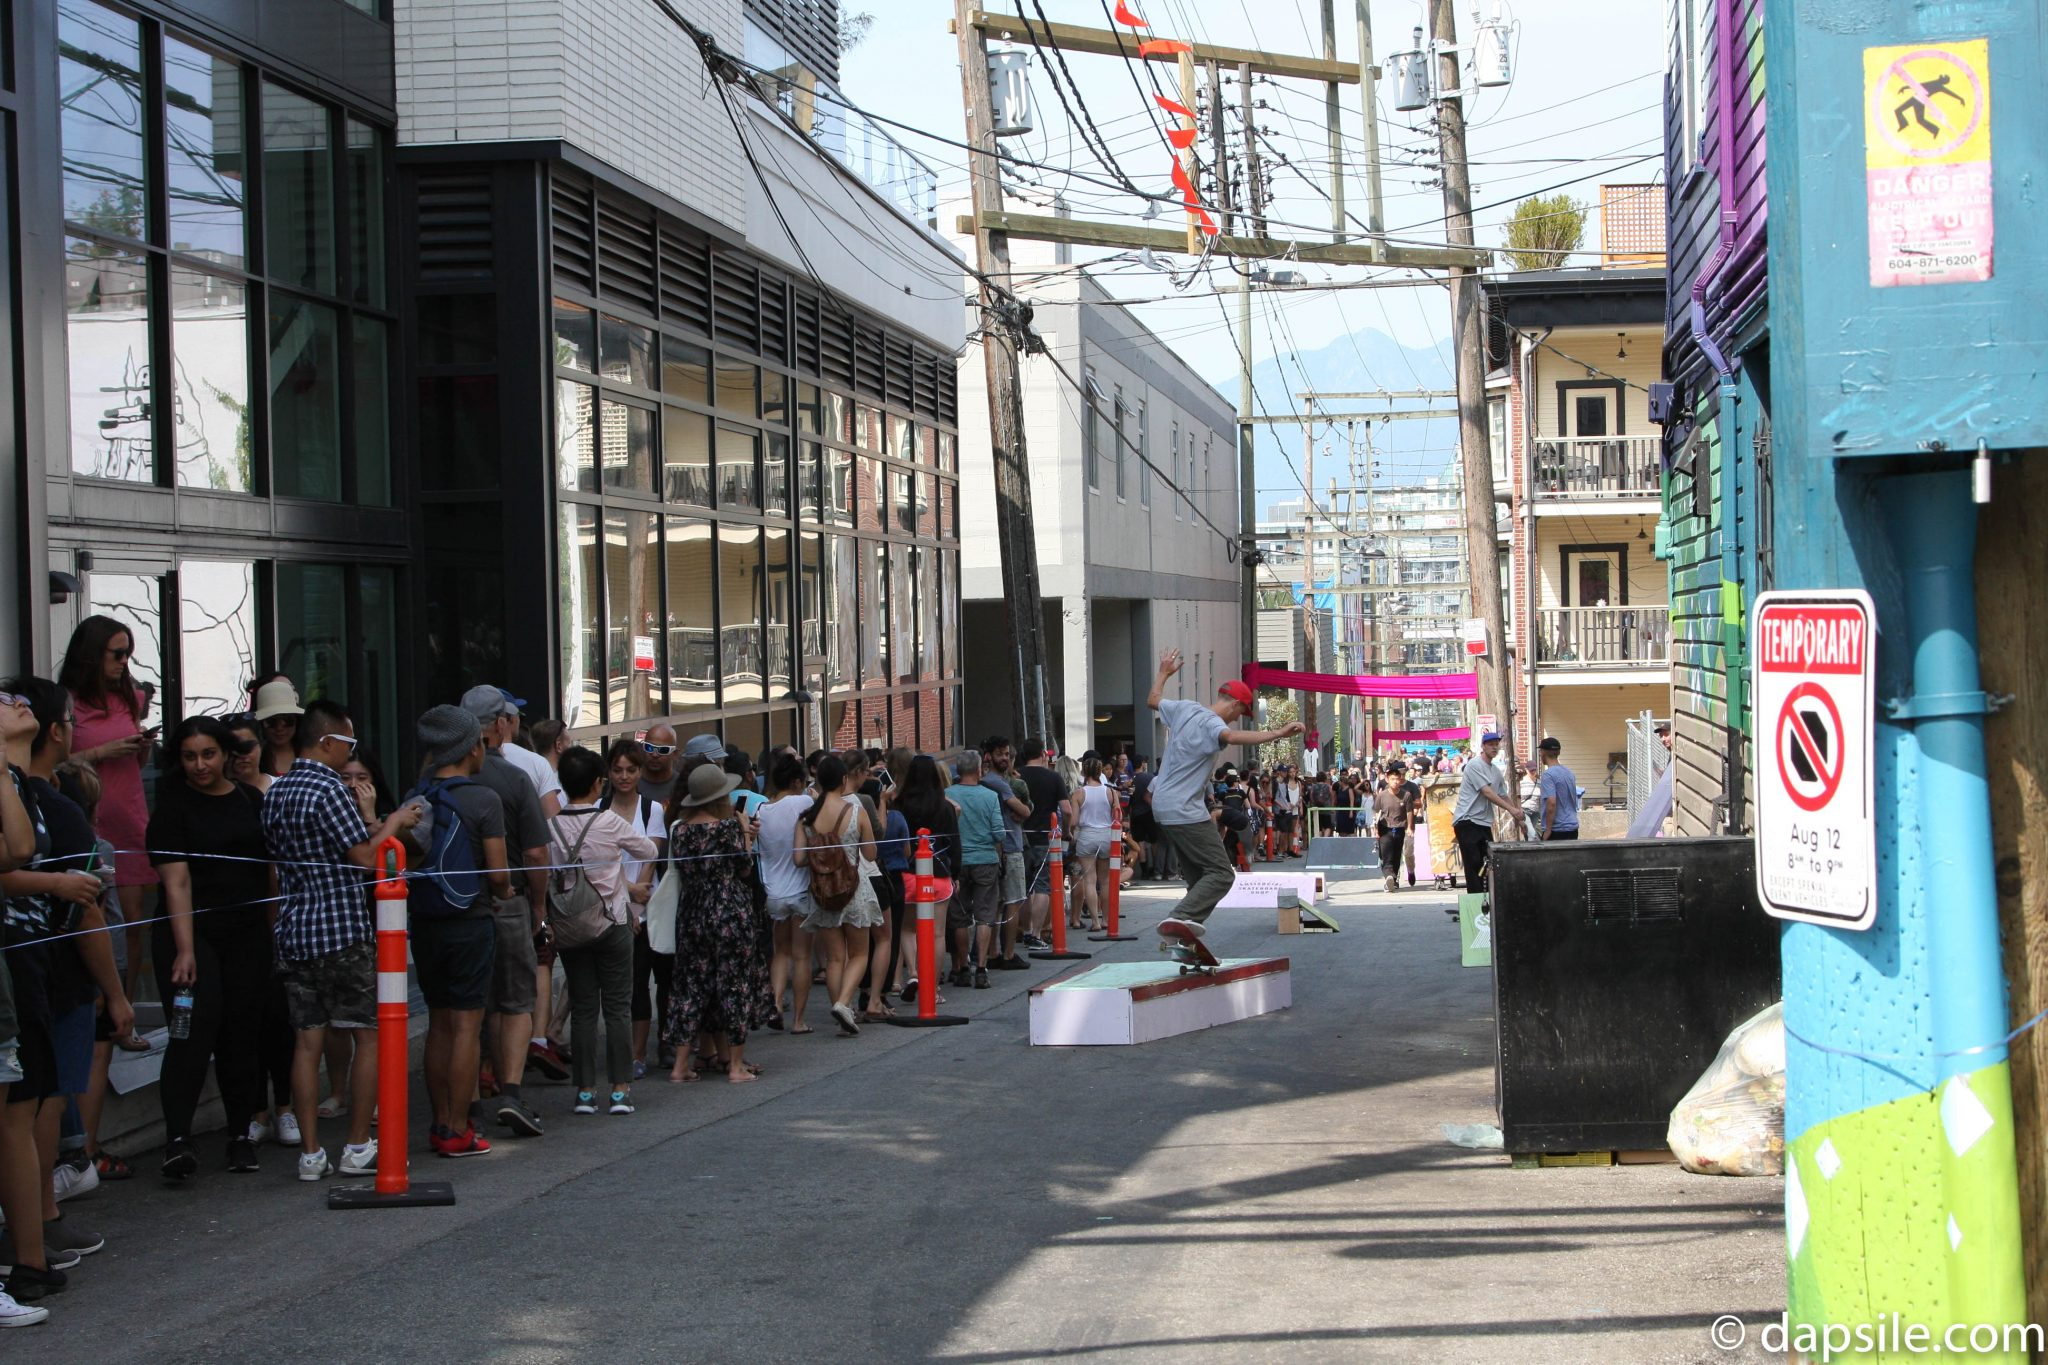 Mural Festival Skaters and Pedestrians Sharing Summer Street Festivals in the Vancouver Area